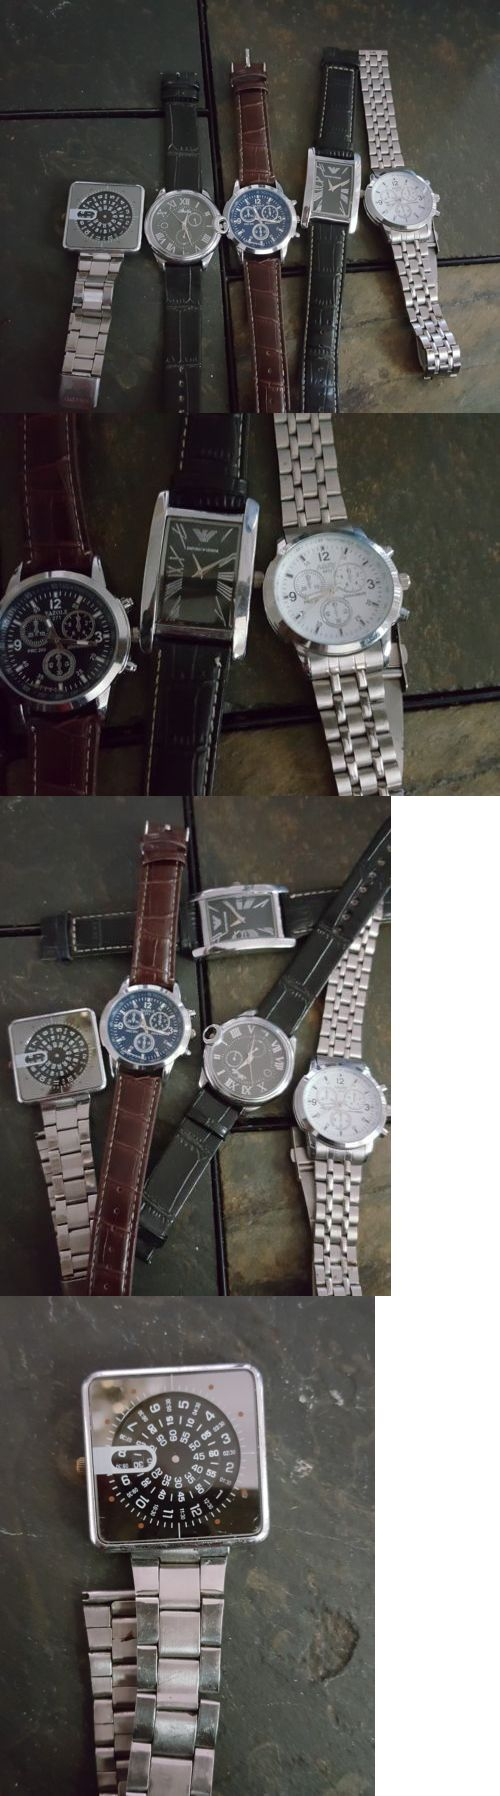 Watches for Parts 165144: Lot Of Five (5)Men S Brand Named Watches.... -> BUY IT NOW ONLY: $60 on eBay!